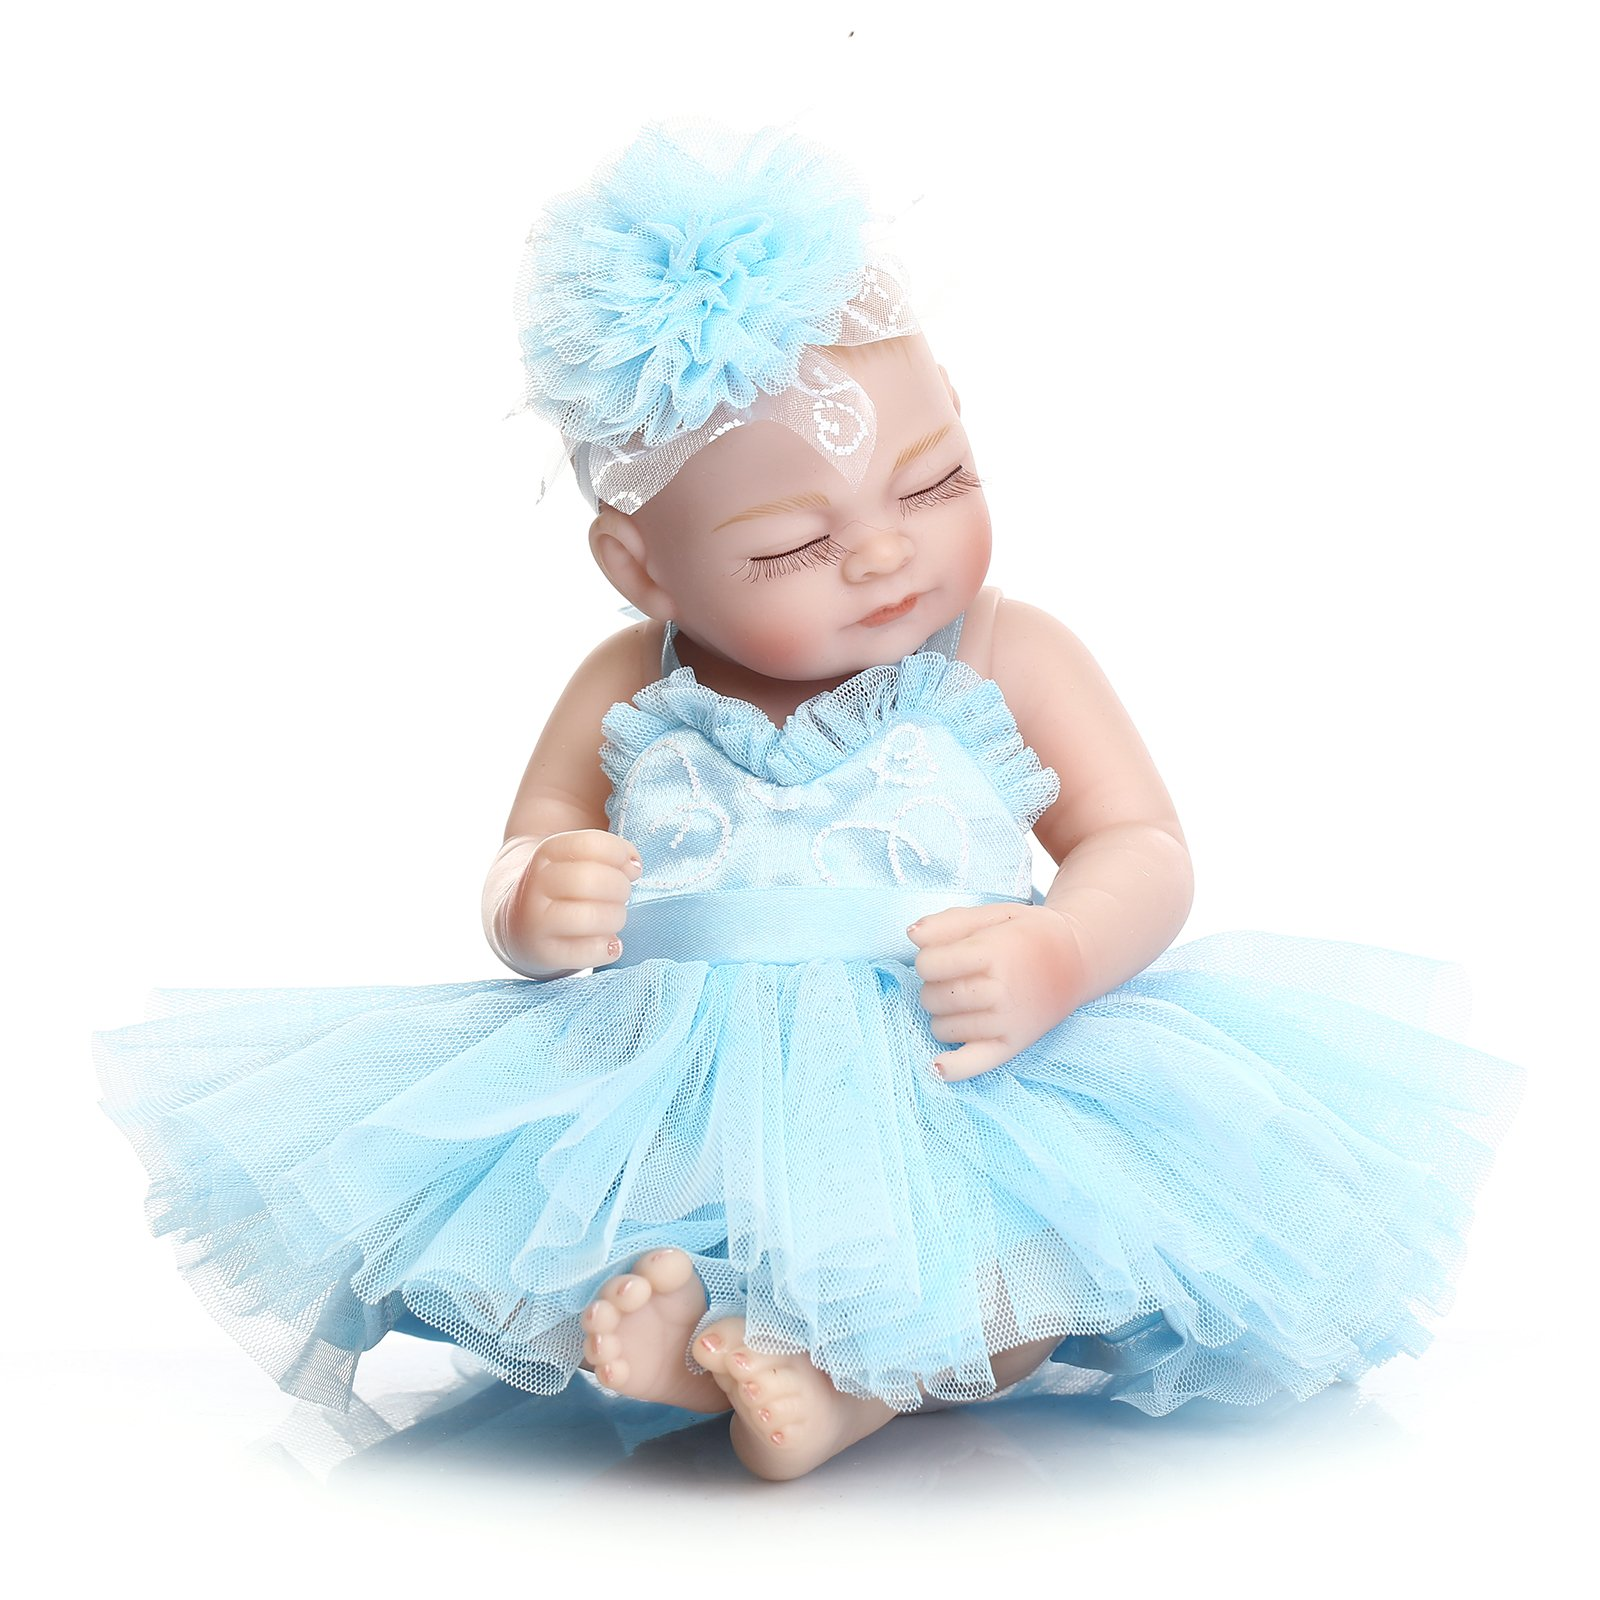 Icradle Lovely Reborn Baby Doll Soft Vinyl Silicone Full